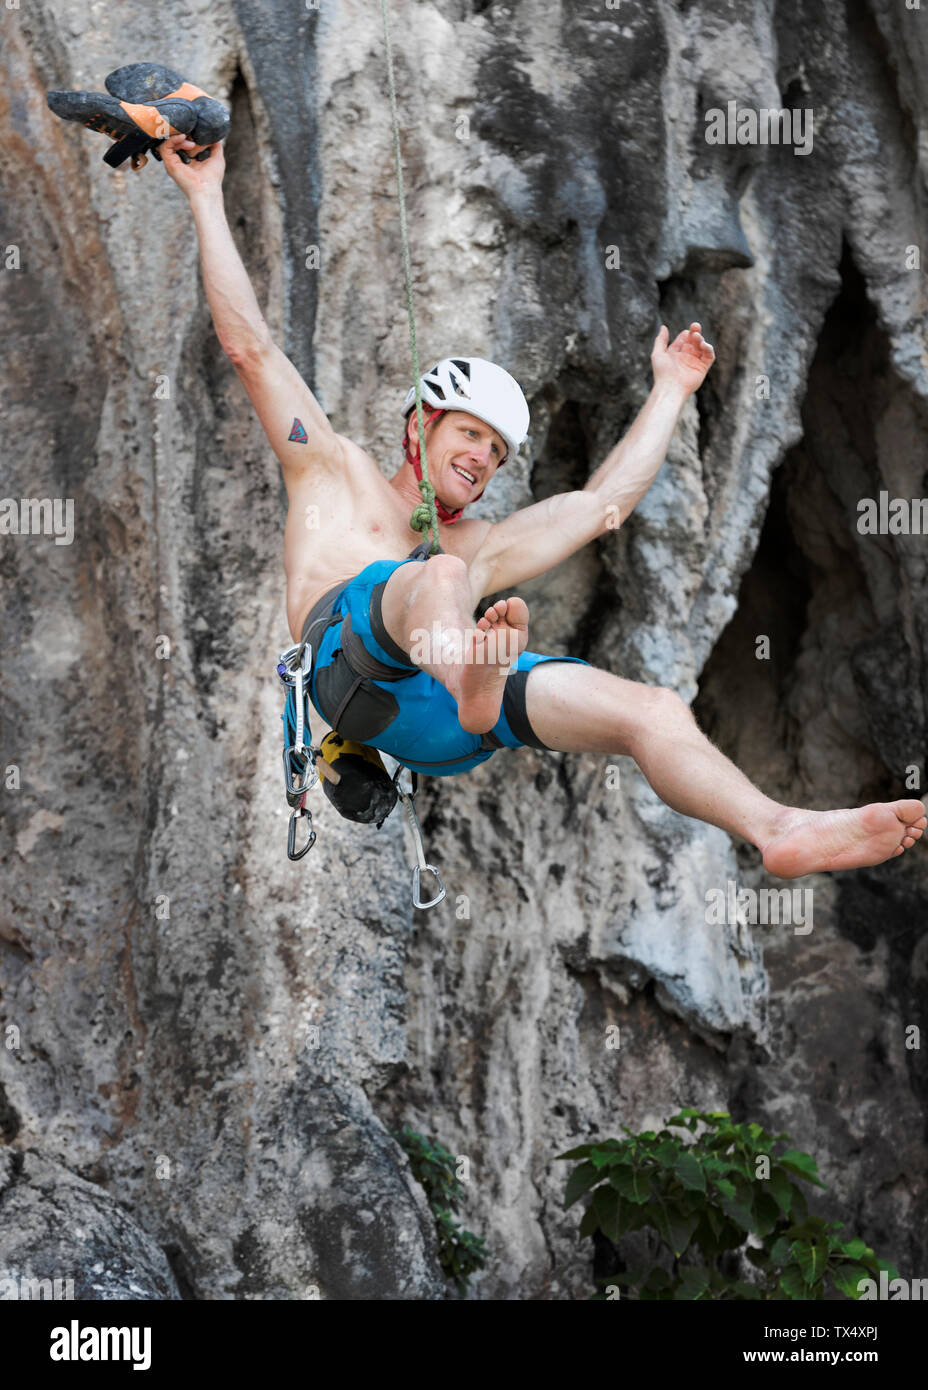 Thailand, Krabi, Lao Liang, barechested climber abseiling from rock wall Stock Photo